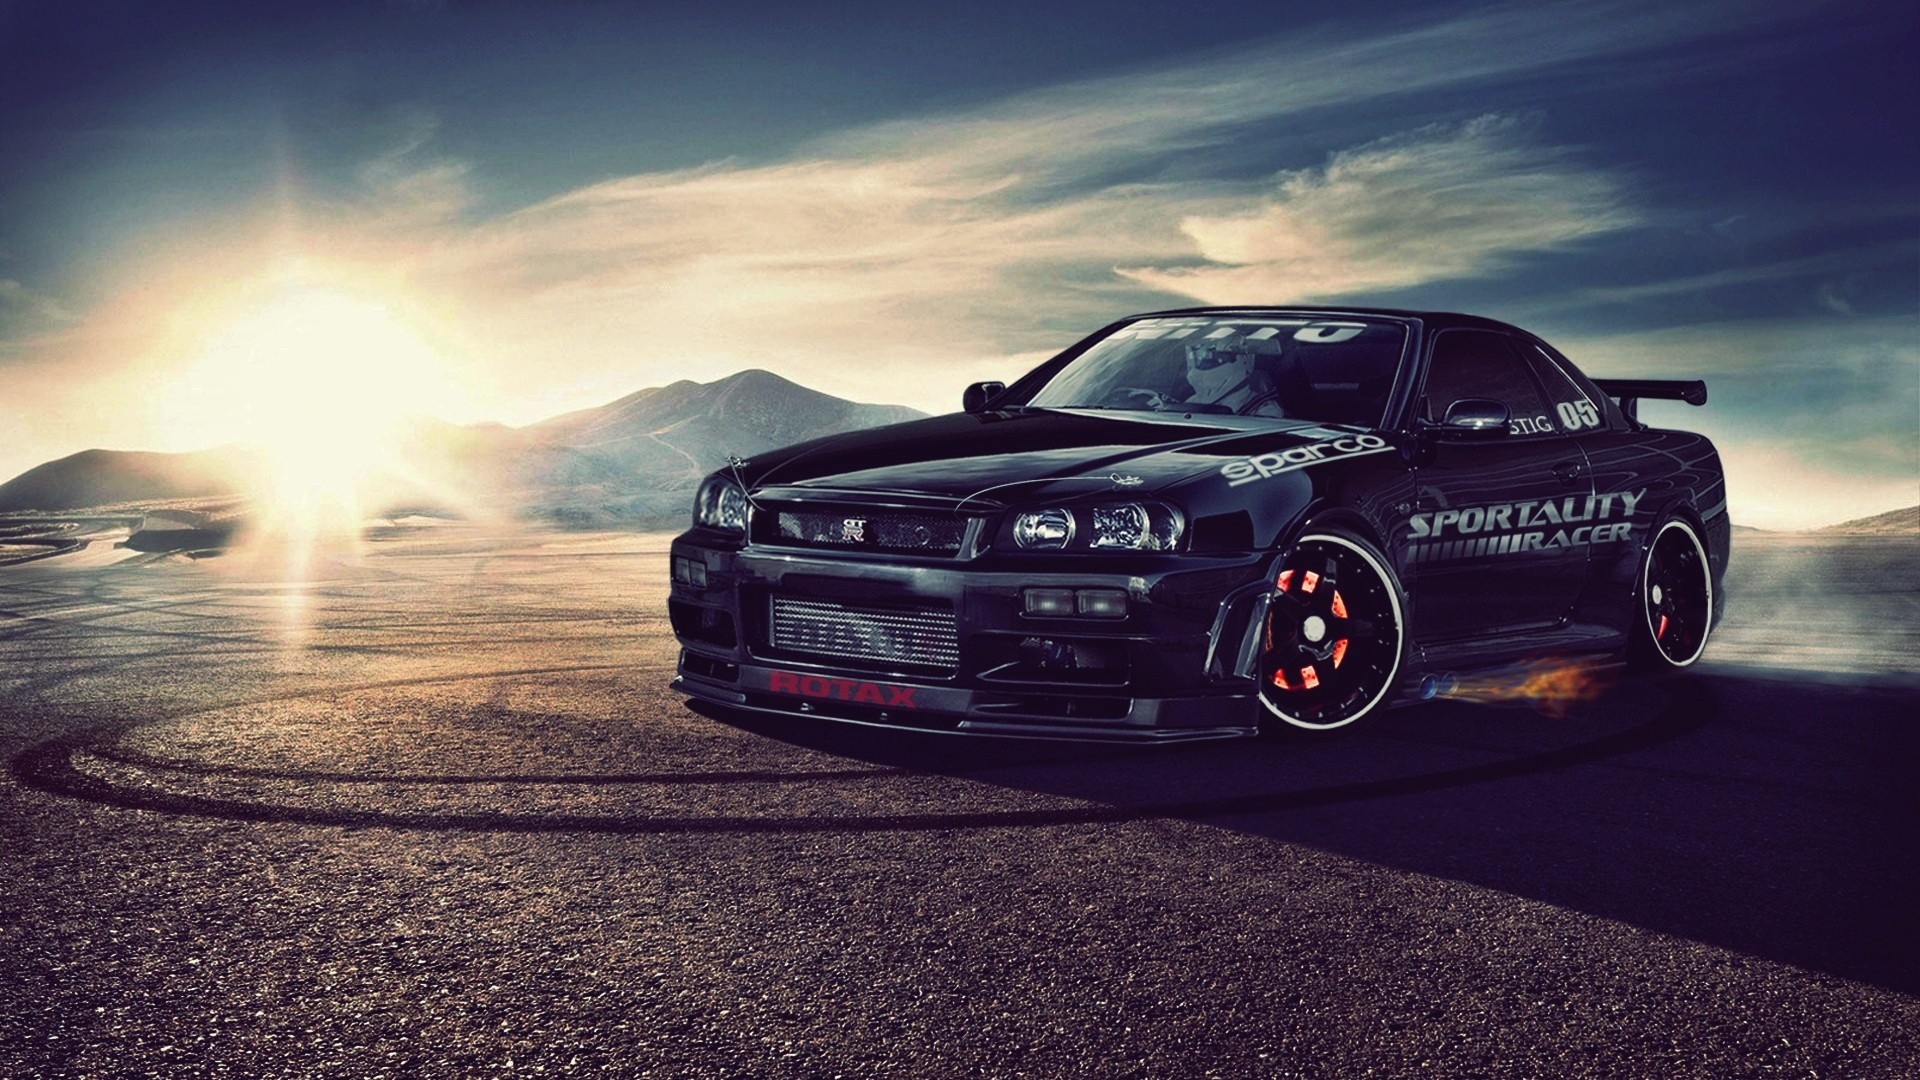 skyline gtr r34 wallpaper wallpapersafari. Black Bedroom Furniture Sets. Home Design Ideas